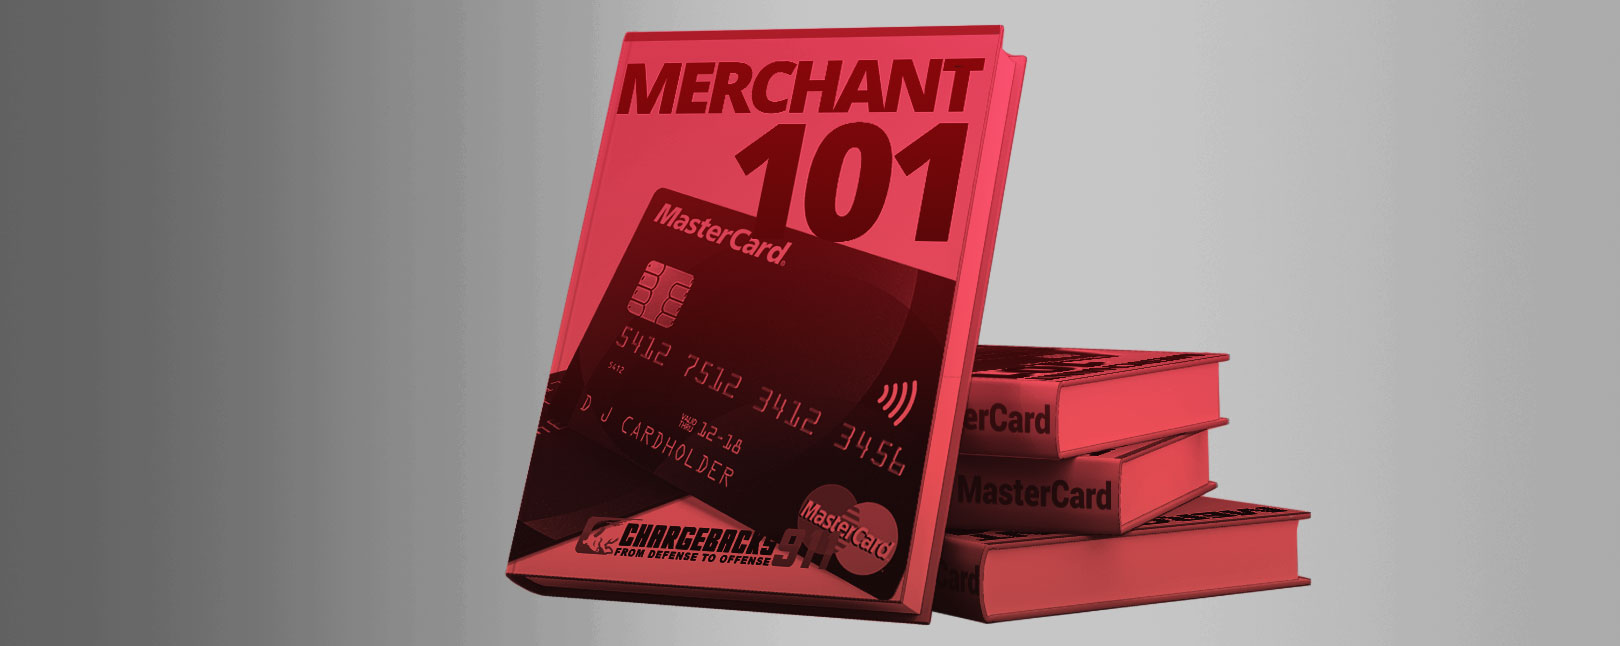 Merchant 101: Introduction to the MasterCard Network